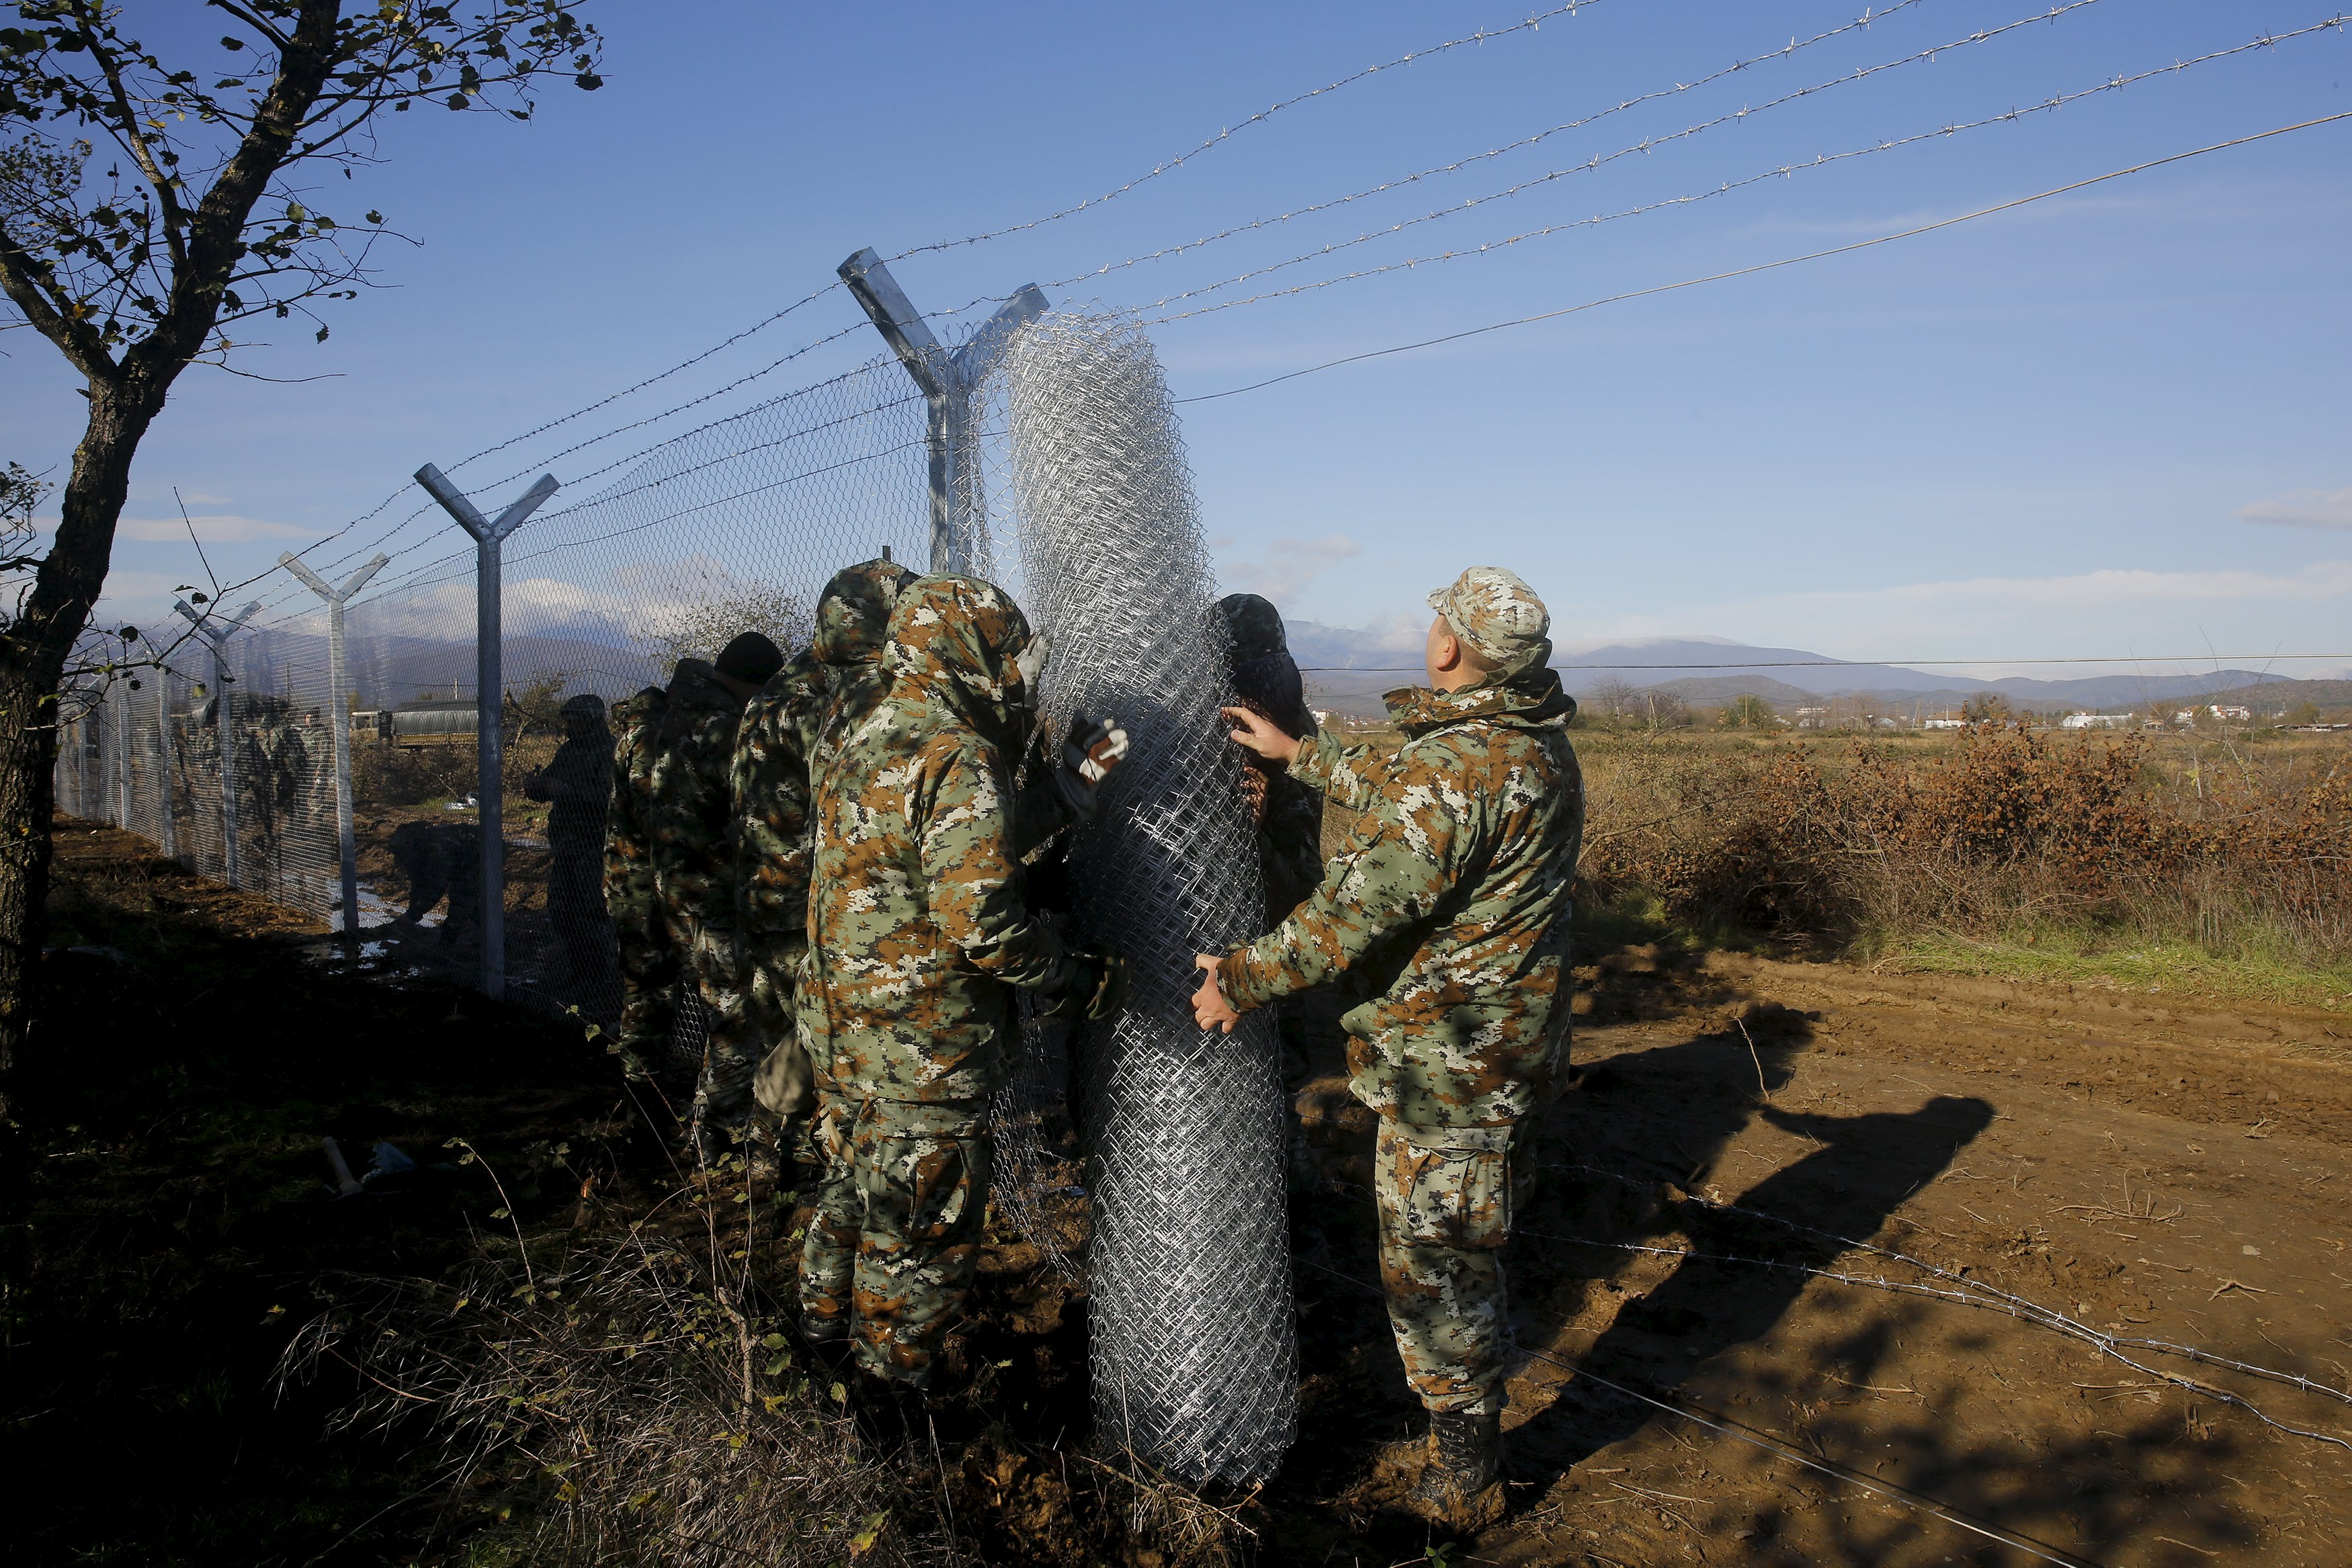 """Macedonian soldiers build up a metal fence at the Greek-Macedonian border near the Greek village of Idomeni, November 28, 2015. Soldiers in Macedonia began erecting a metal fence on Saturday on the country's southern border with Greece, described by an official as a """"preventive"""" measure to better control the flow of migrants across the Balkans. Picture taken from the Greek side of the border. REUTERS/Yannis Behrakis"""